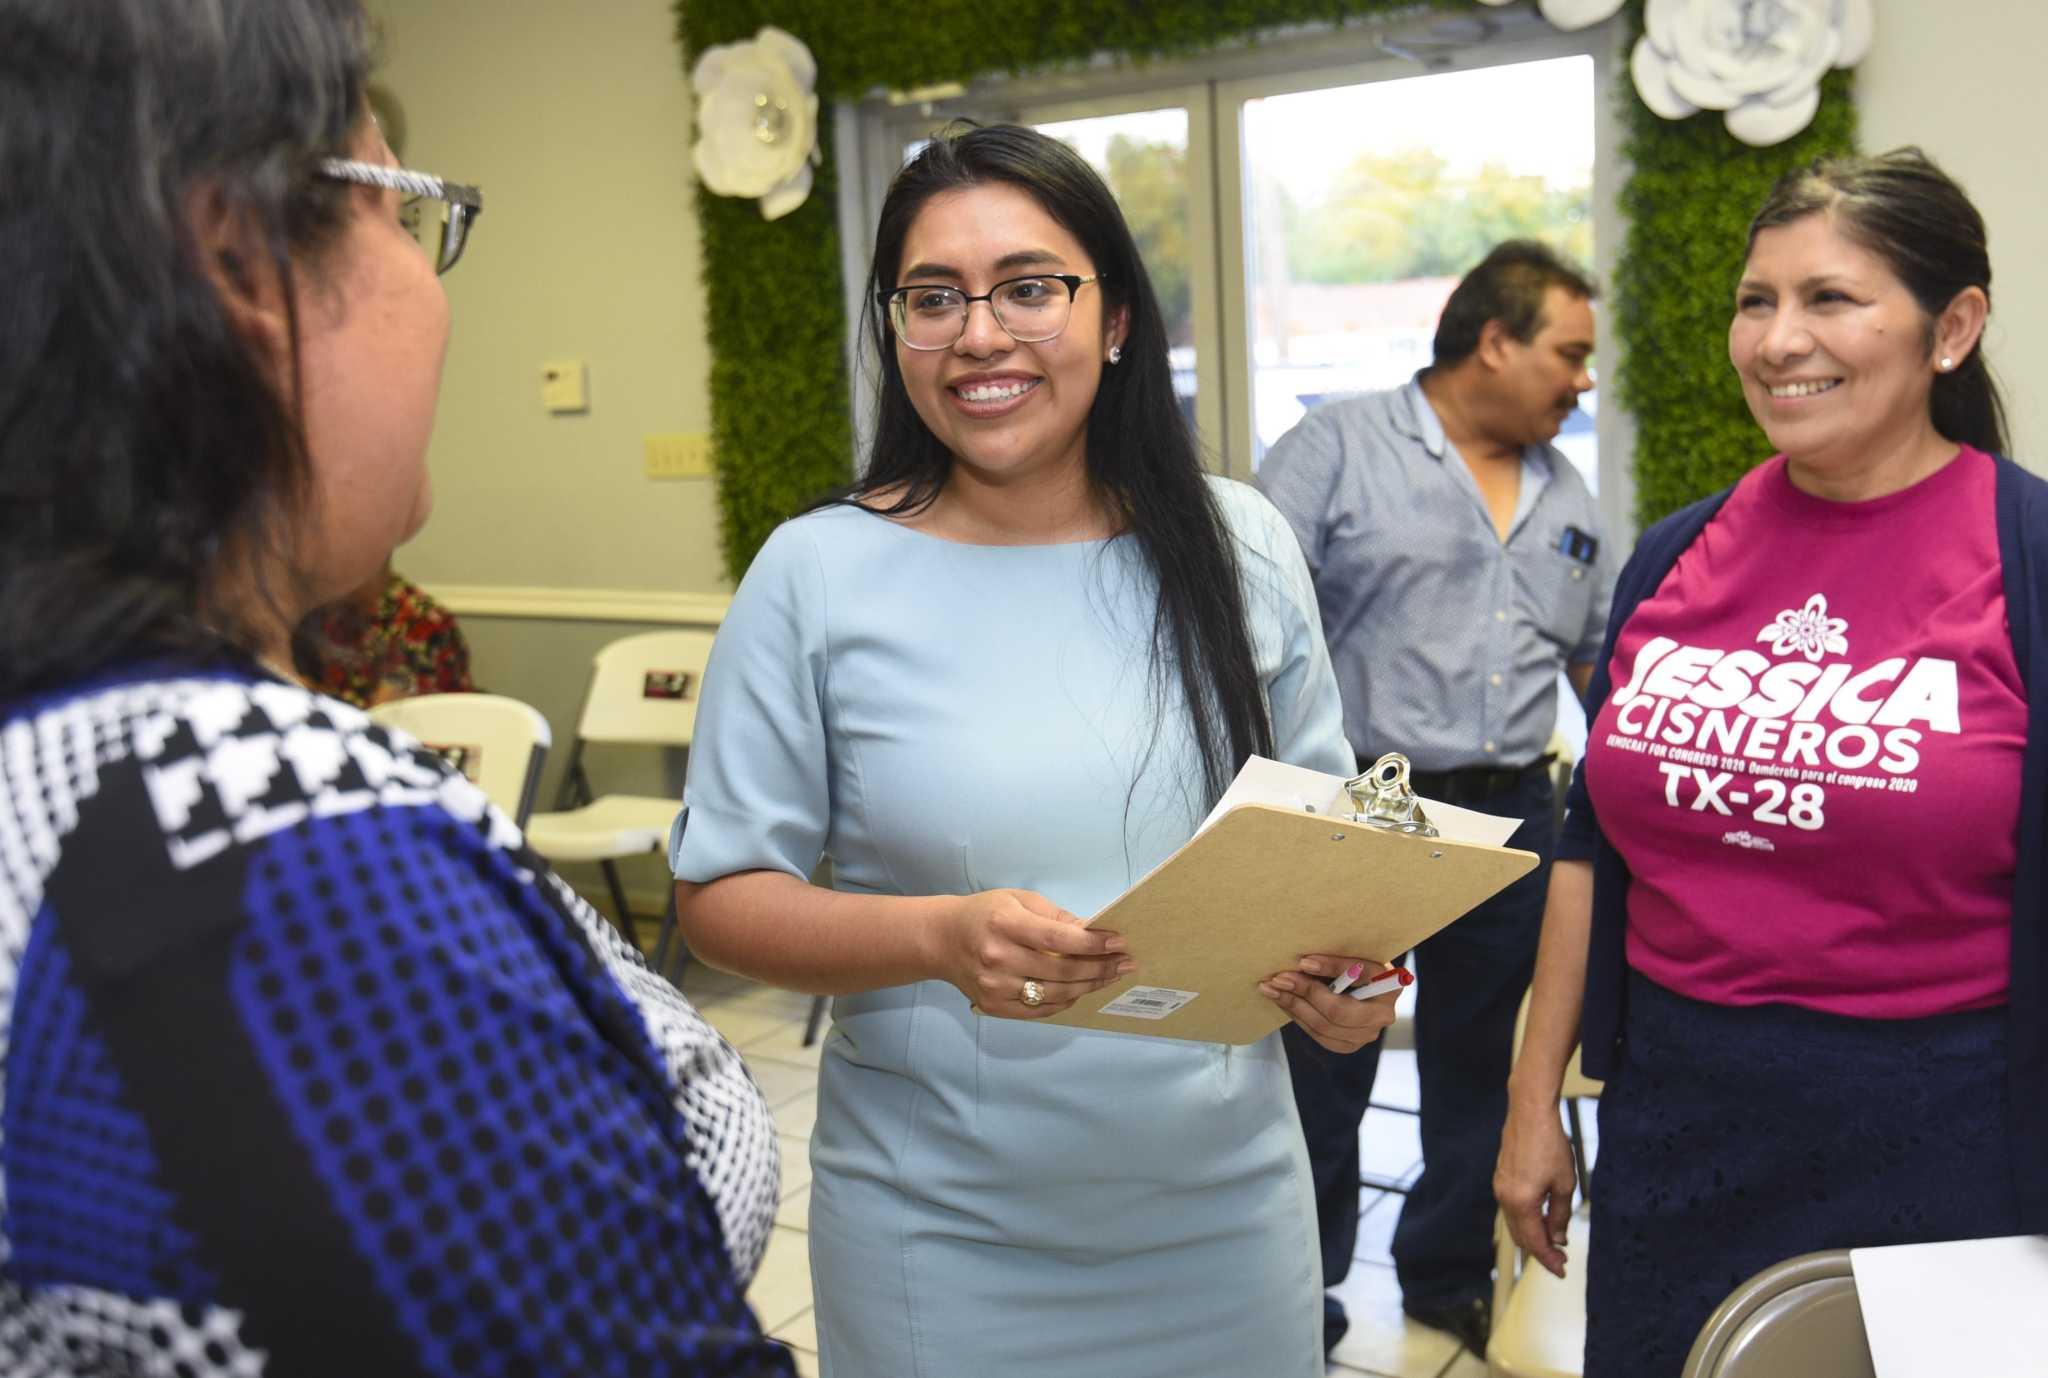 Candidate reflects on days following campaign launch